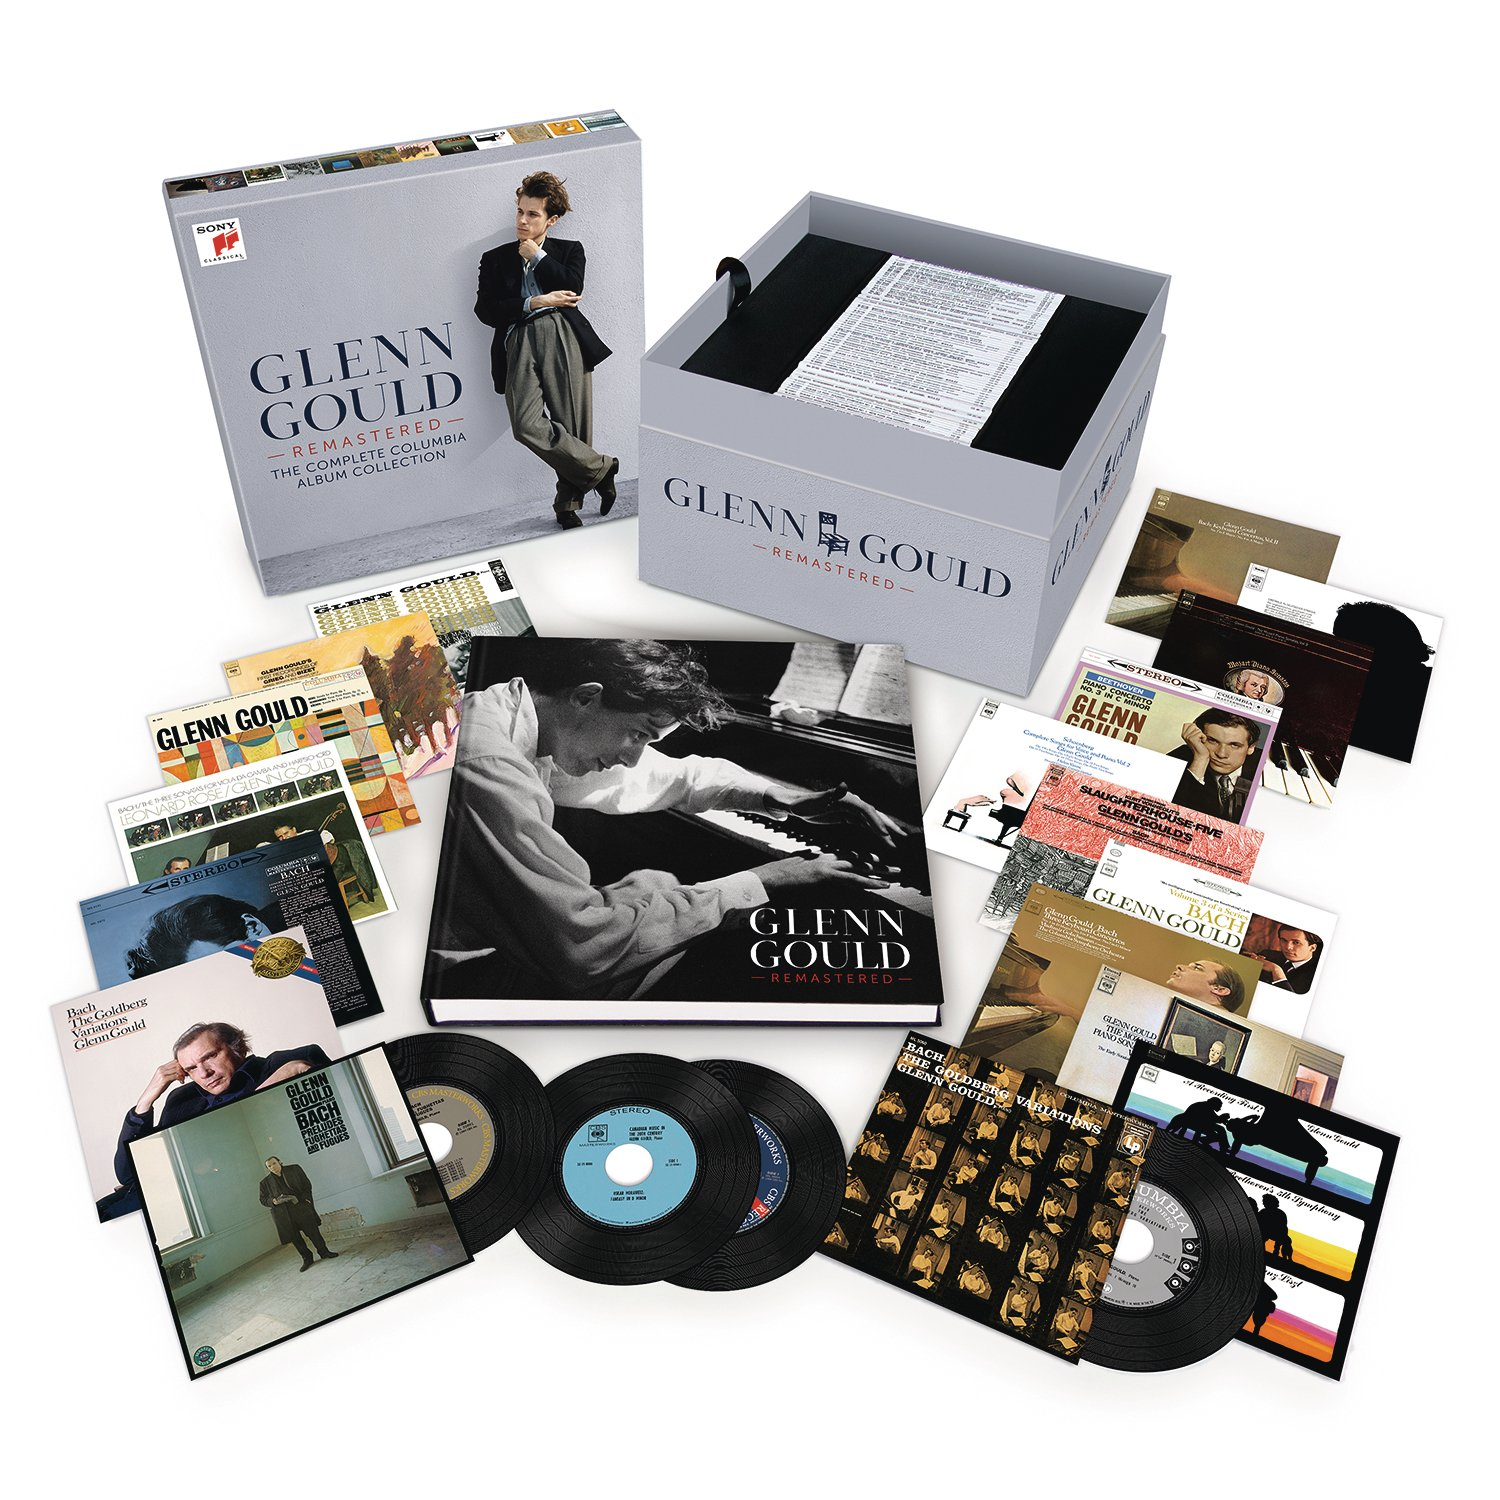 Glenn Gould Remastered - The Complete Columbia Album Collection                                                                                                                                                                                                                                                                                                                                                                                                <span class=